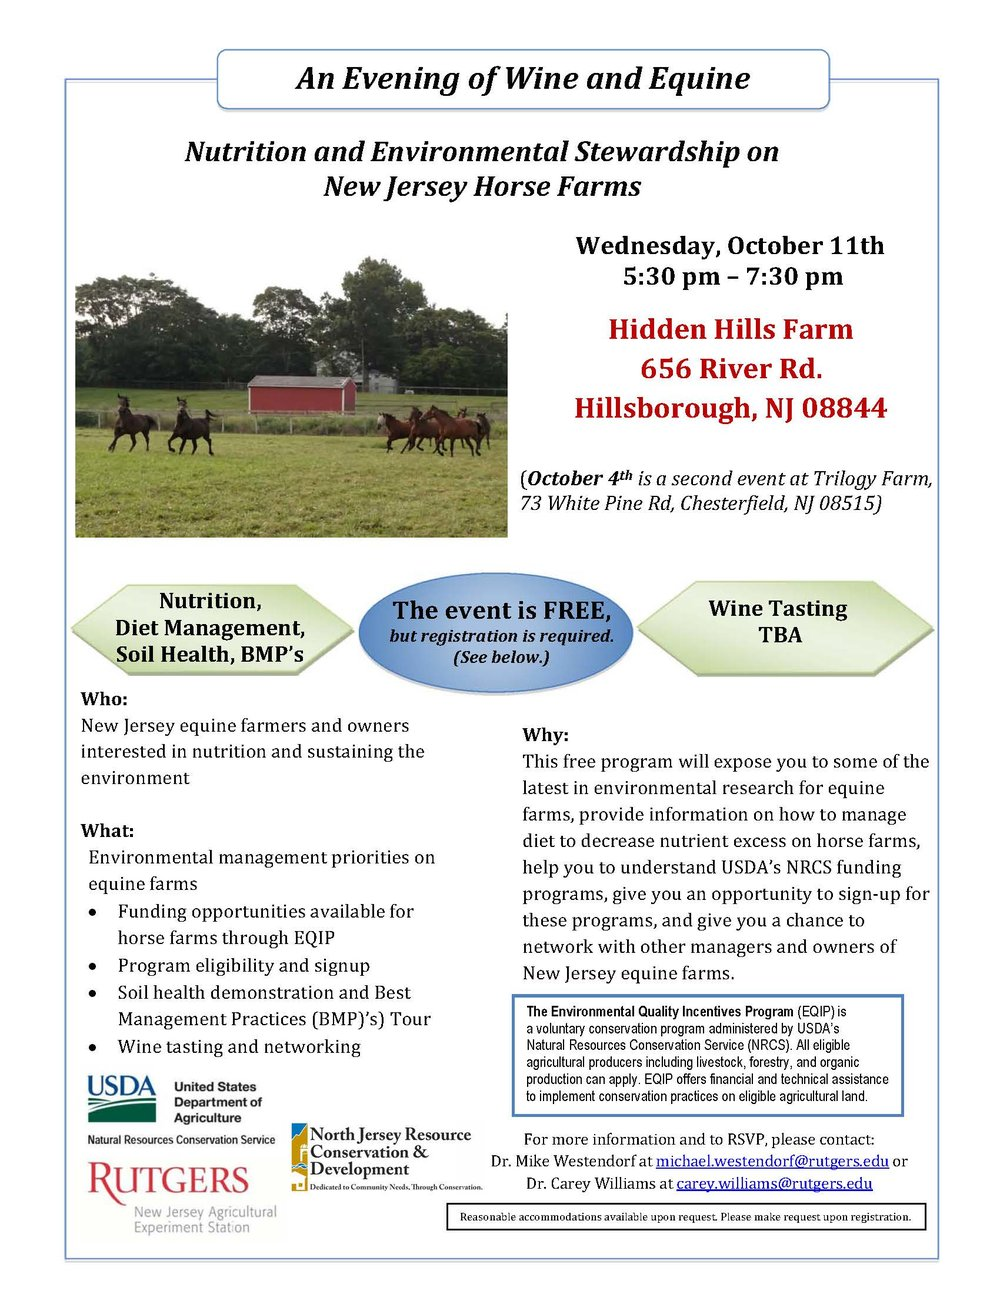 NRCS_flyer_Hidden_Hills_Farm_Oct_11.jpg